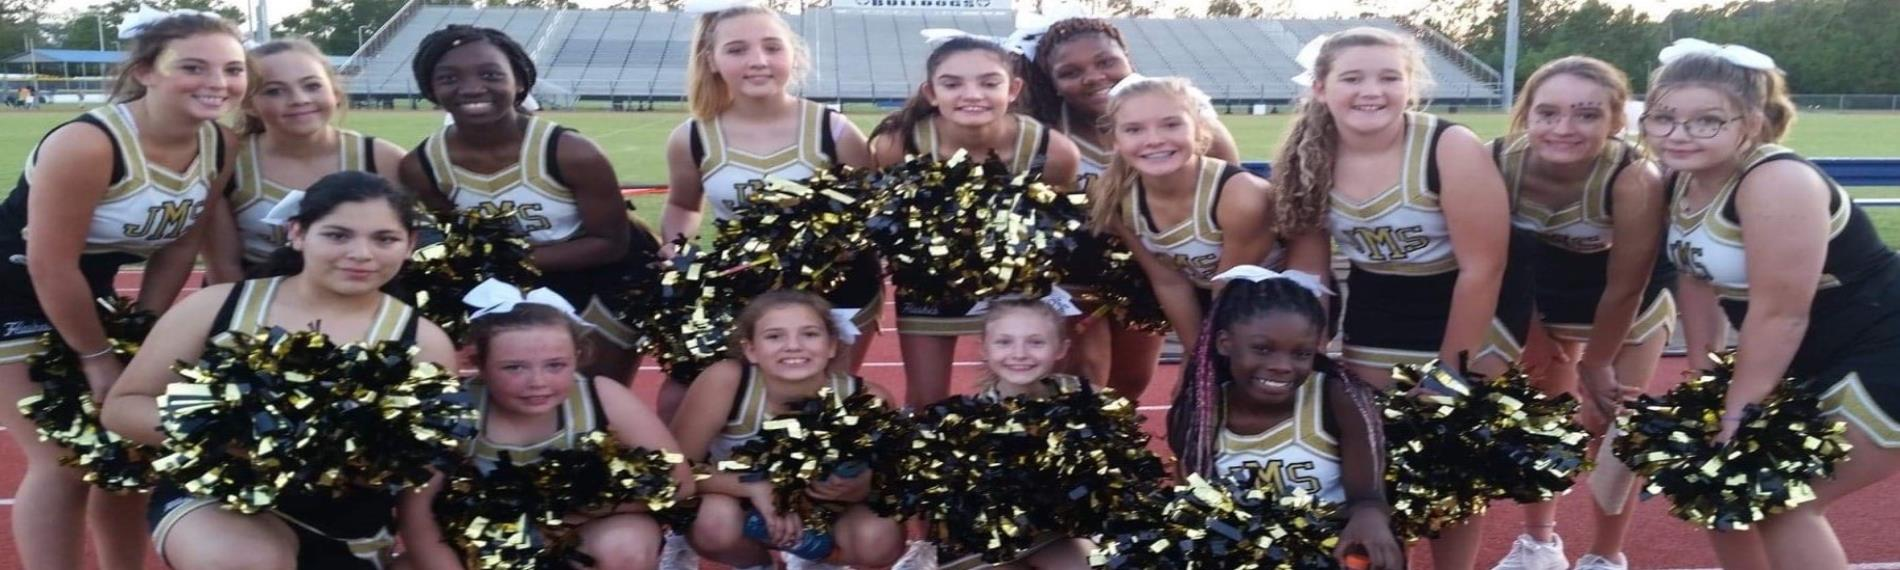 JMS Flashes Cheerleaders